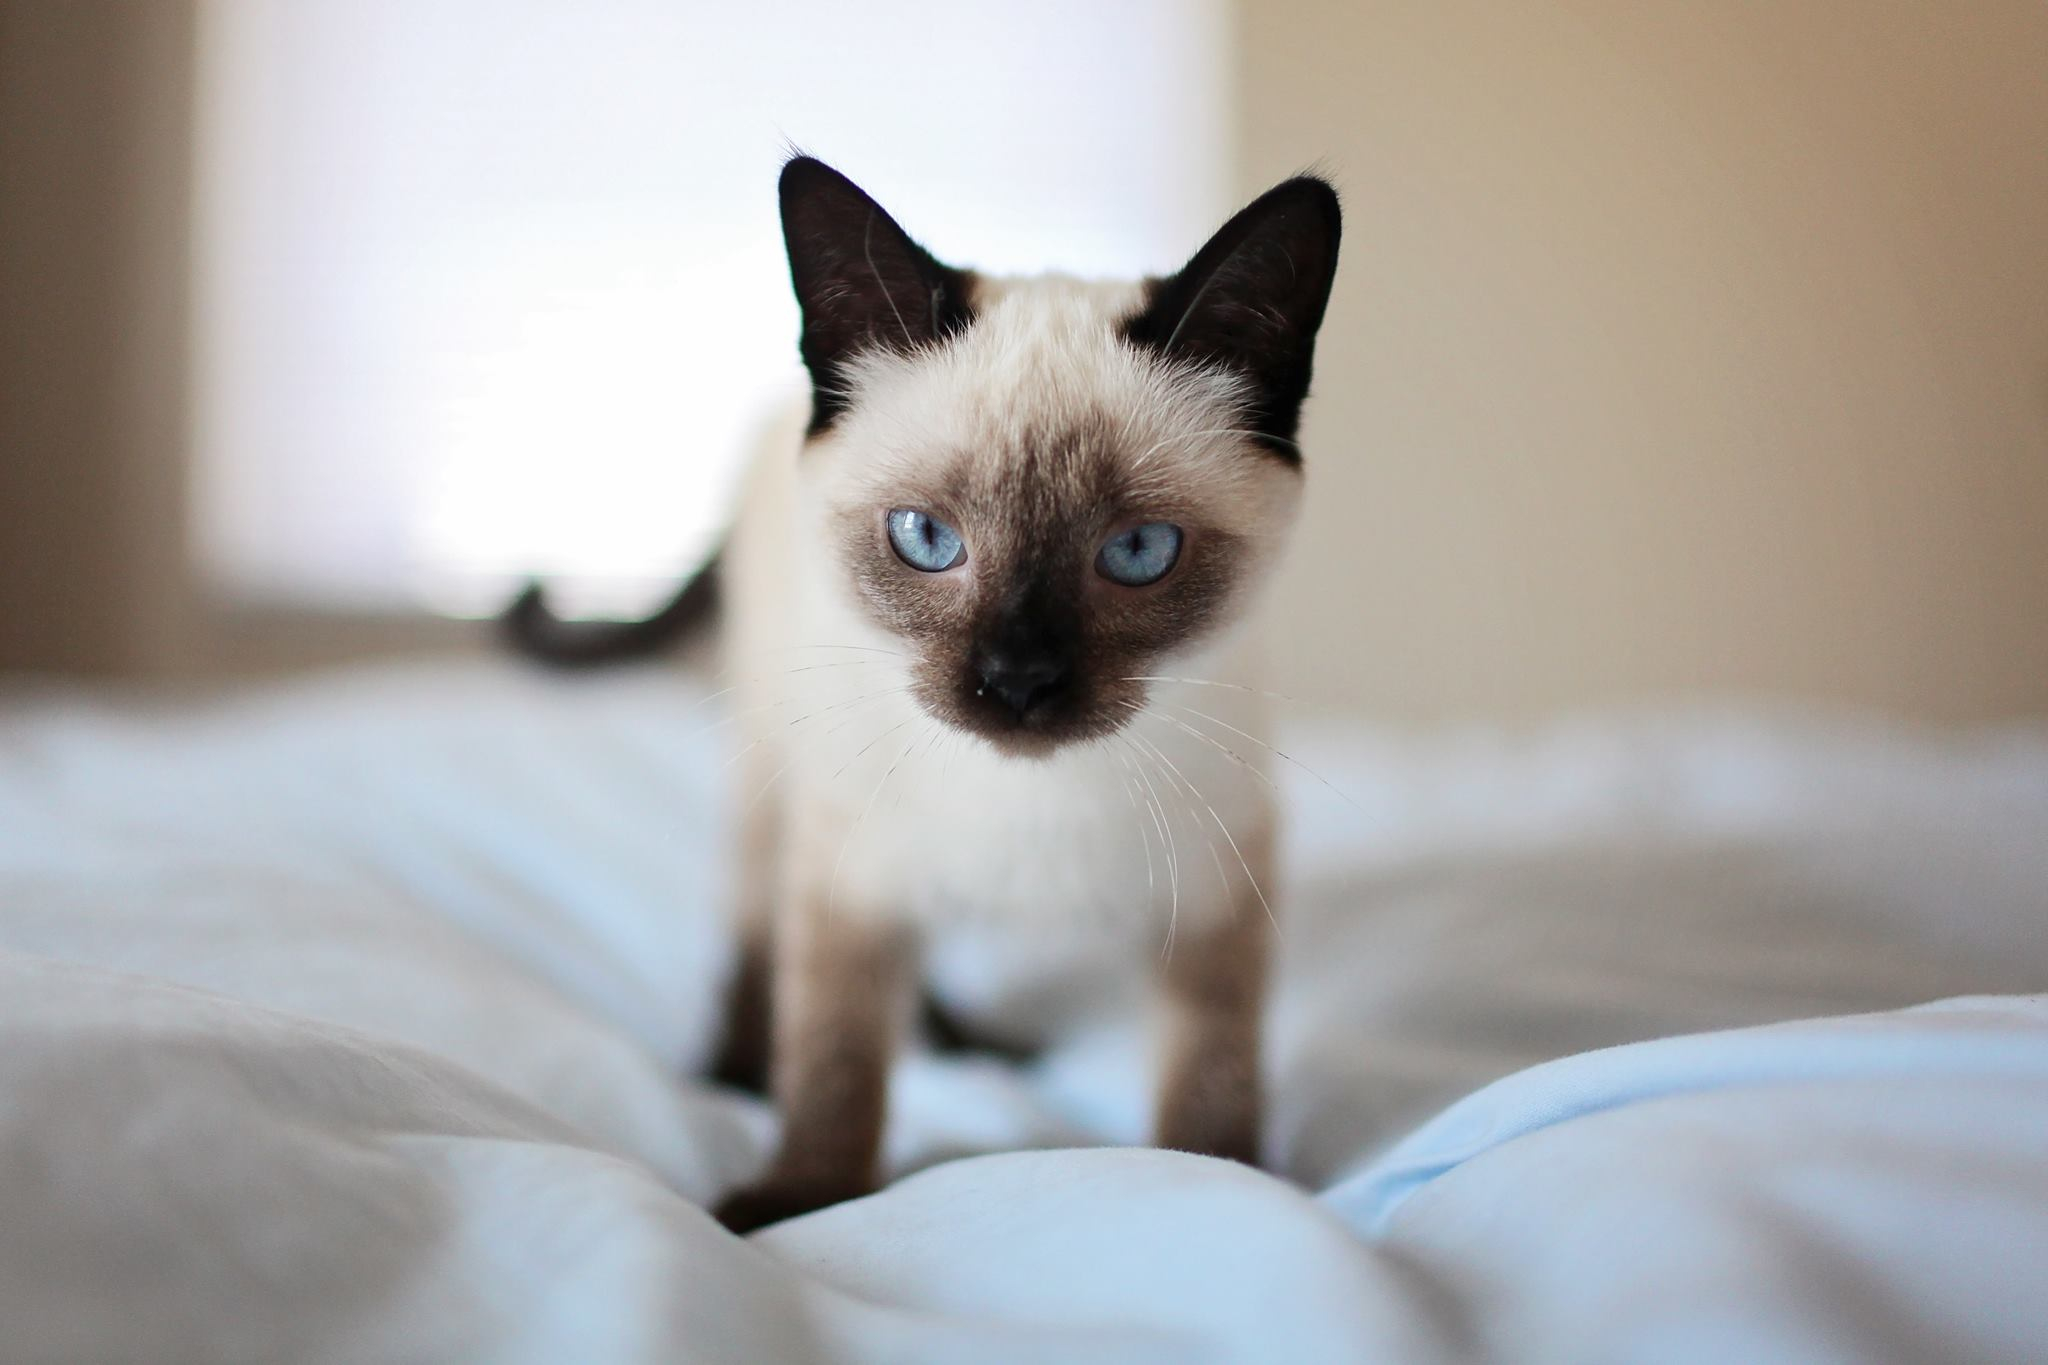 siamese cat on a bed